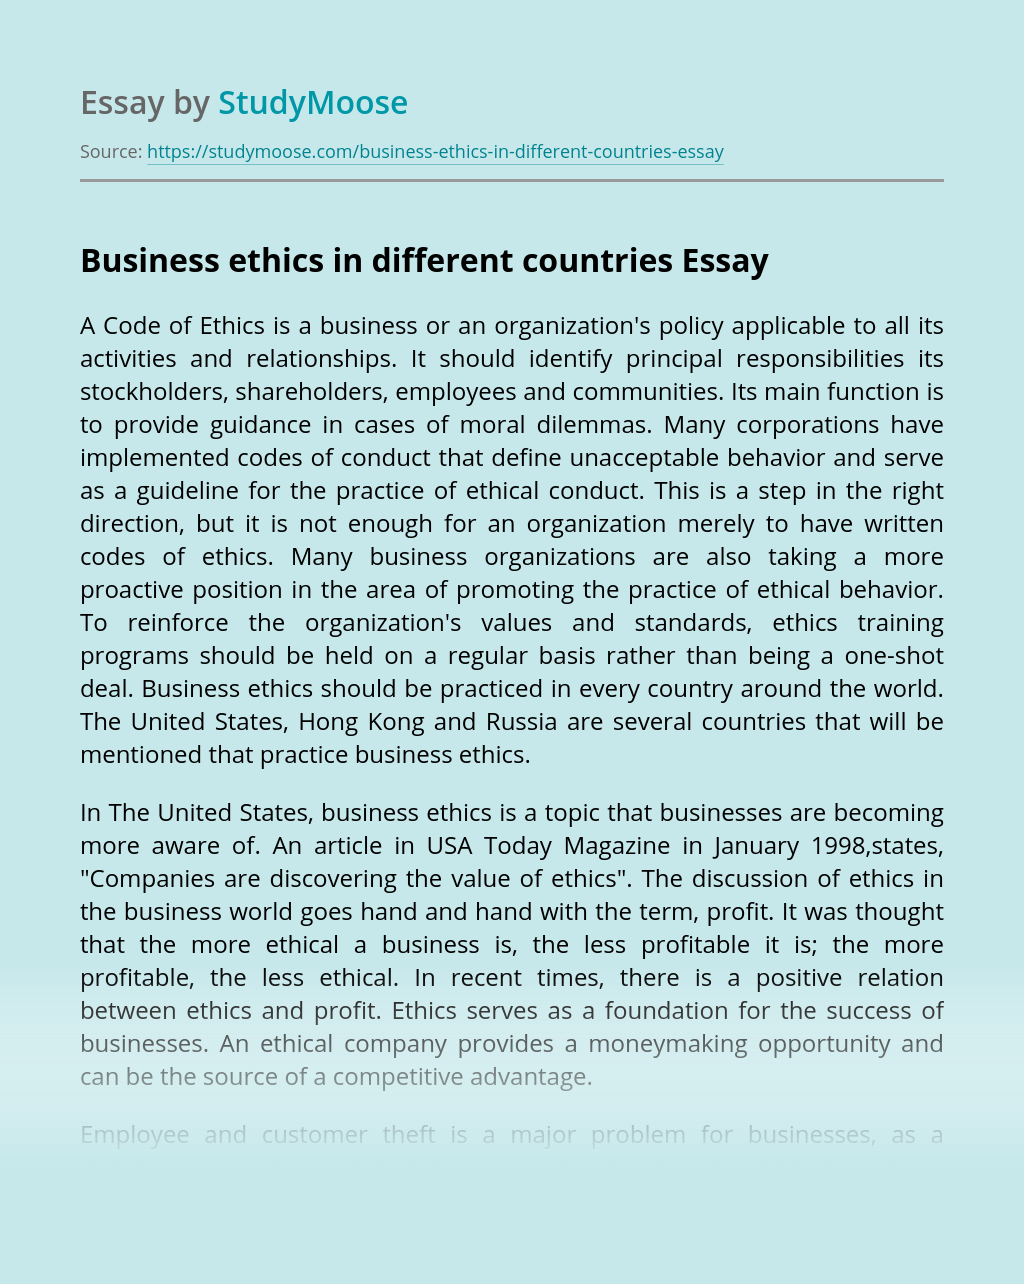 Business ethics in different countries